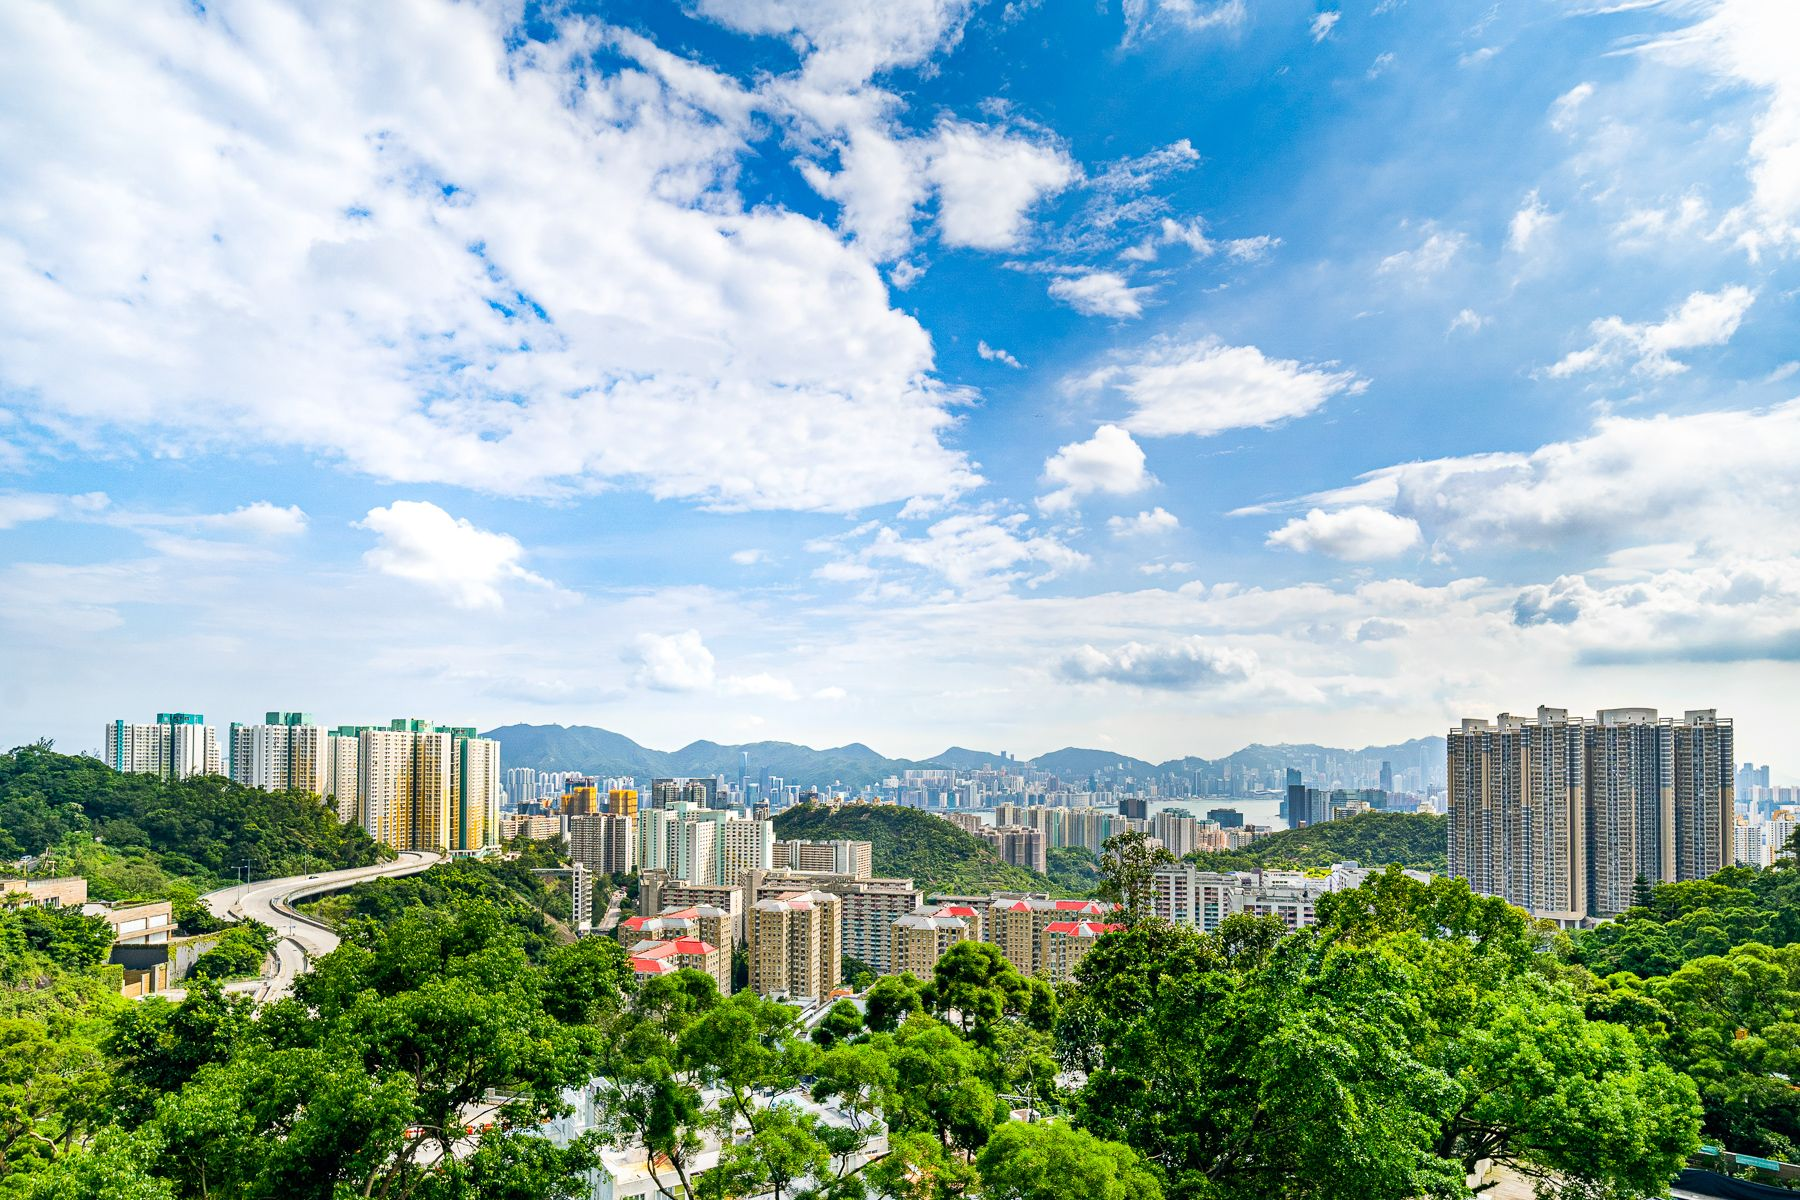 The Most Exclusive Residential Neighbourhoods In Hong Kong—And The Properties You Can Expect To Find